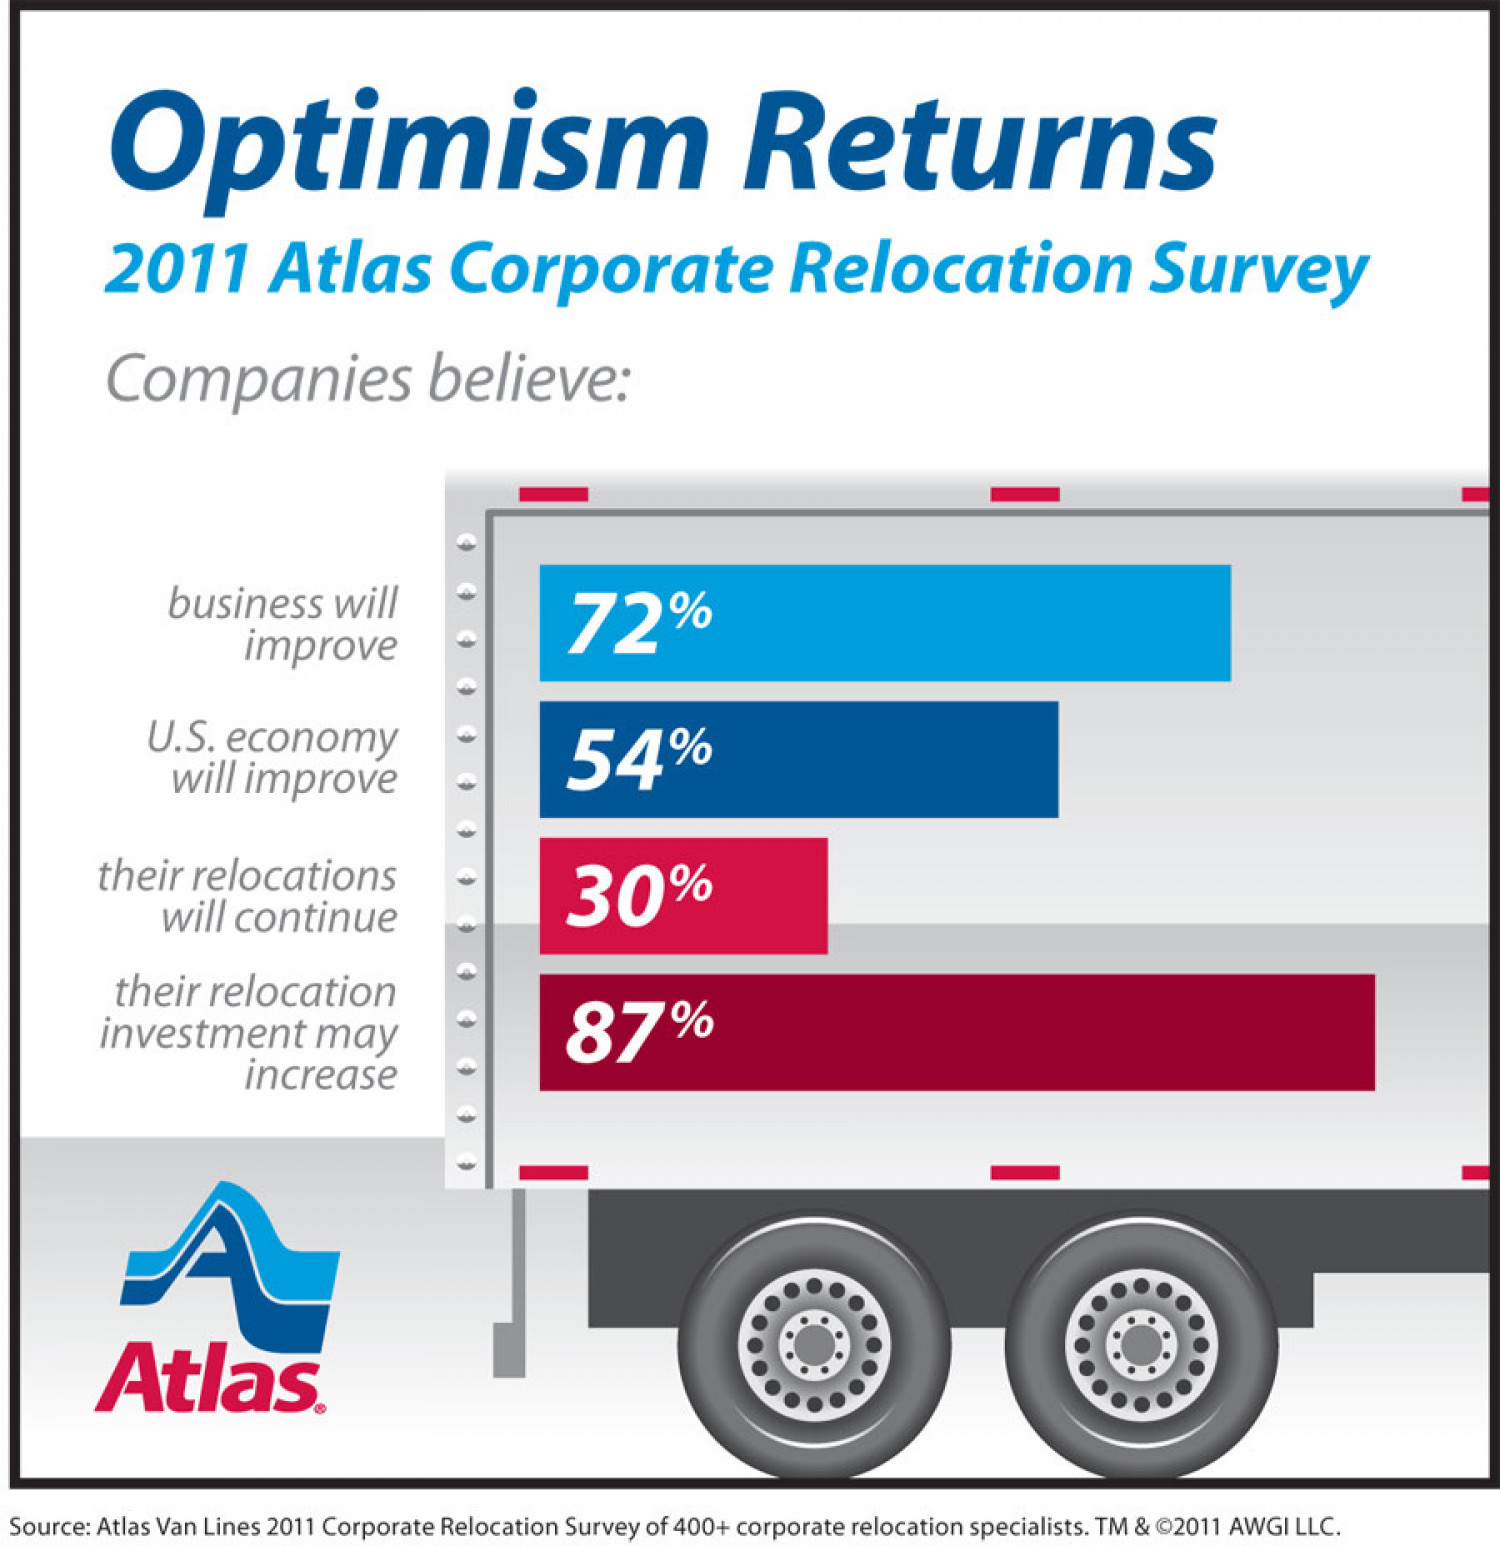 2011 Corporate Relocation Survey Infographic